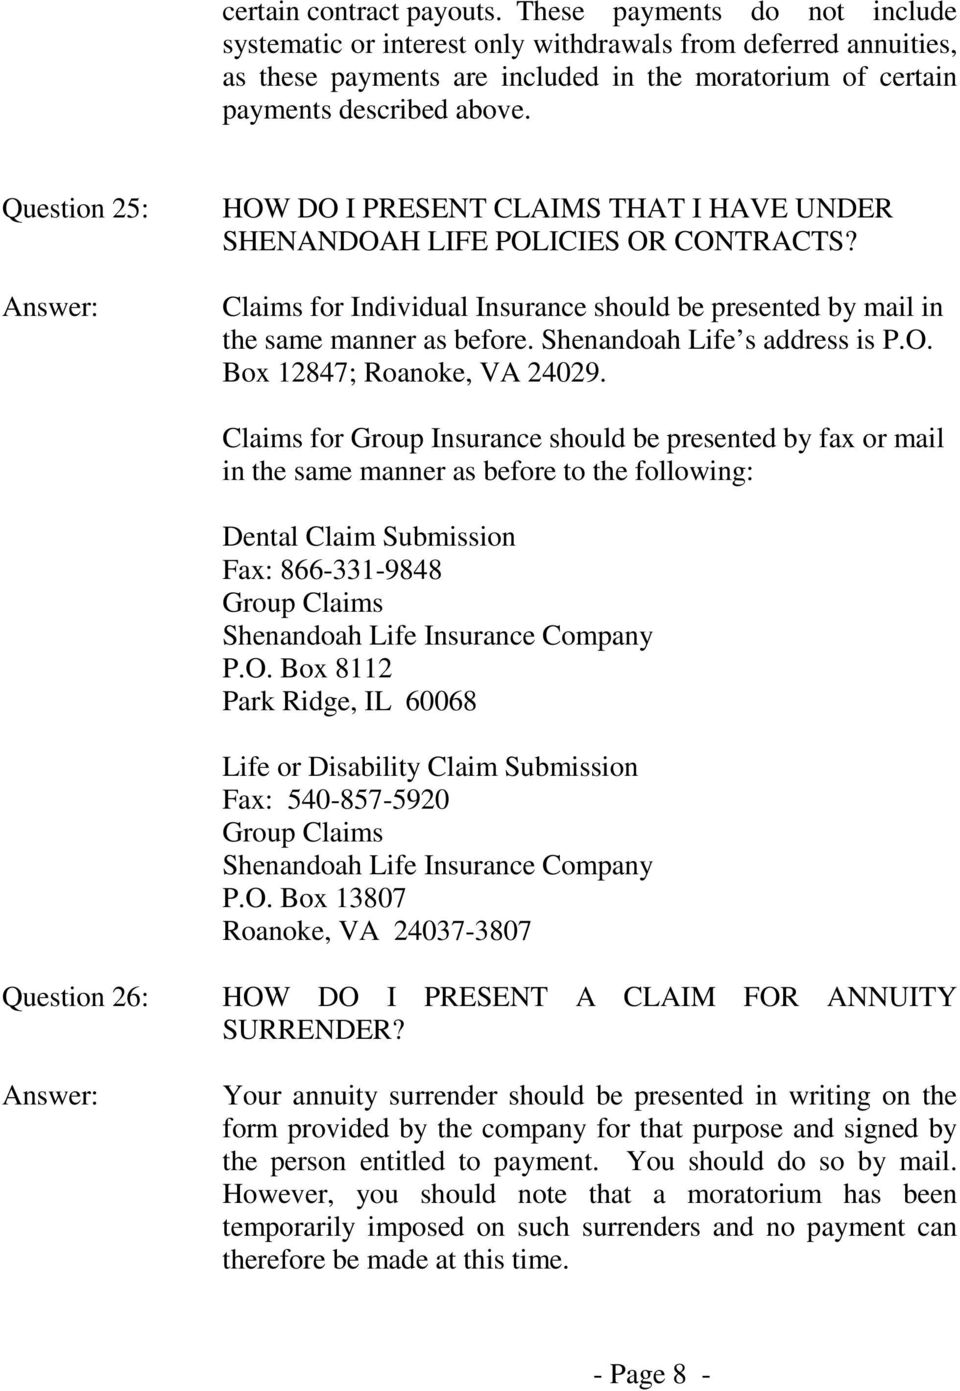 Question 25: HOW DO I PRESENT CLAIMS THAT I HAVE UNDER SHENANDOAH LIFE POLICIES OR CONTRACTS? Claims for Individual Insurance should be presented by mail in the same manner as before.